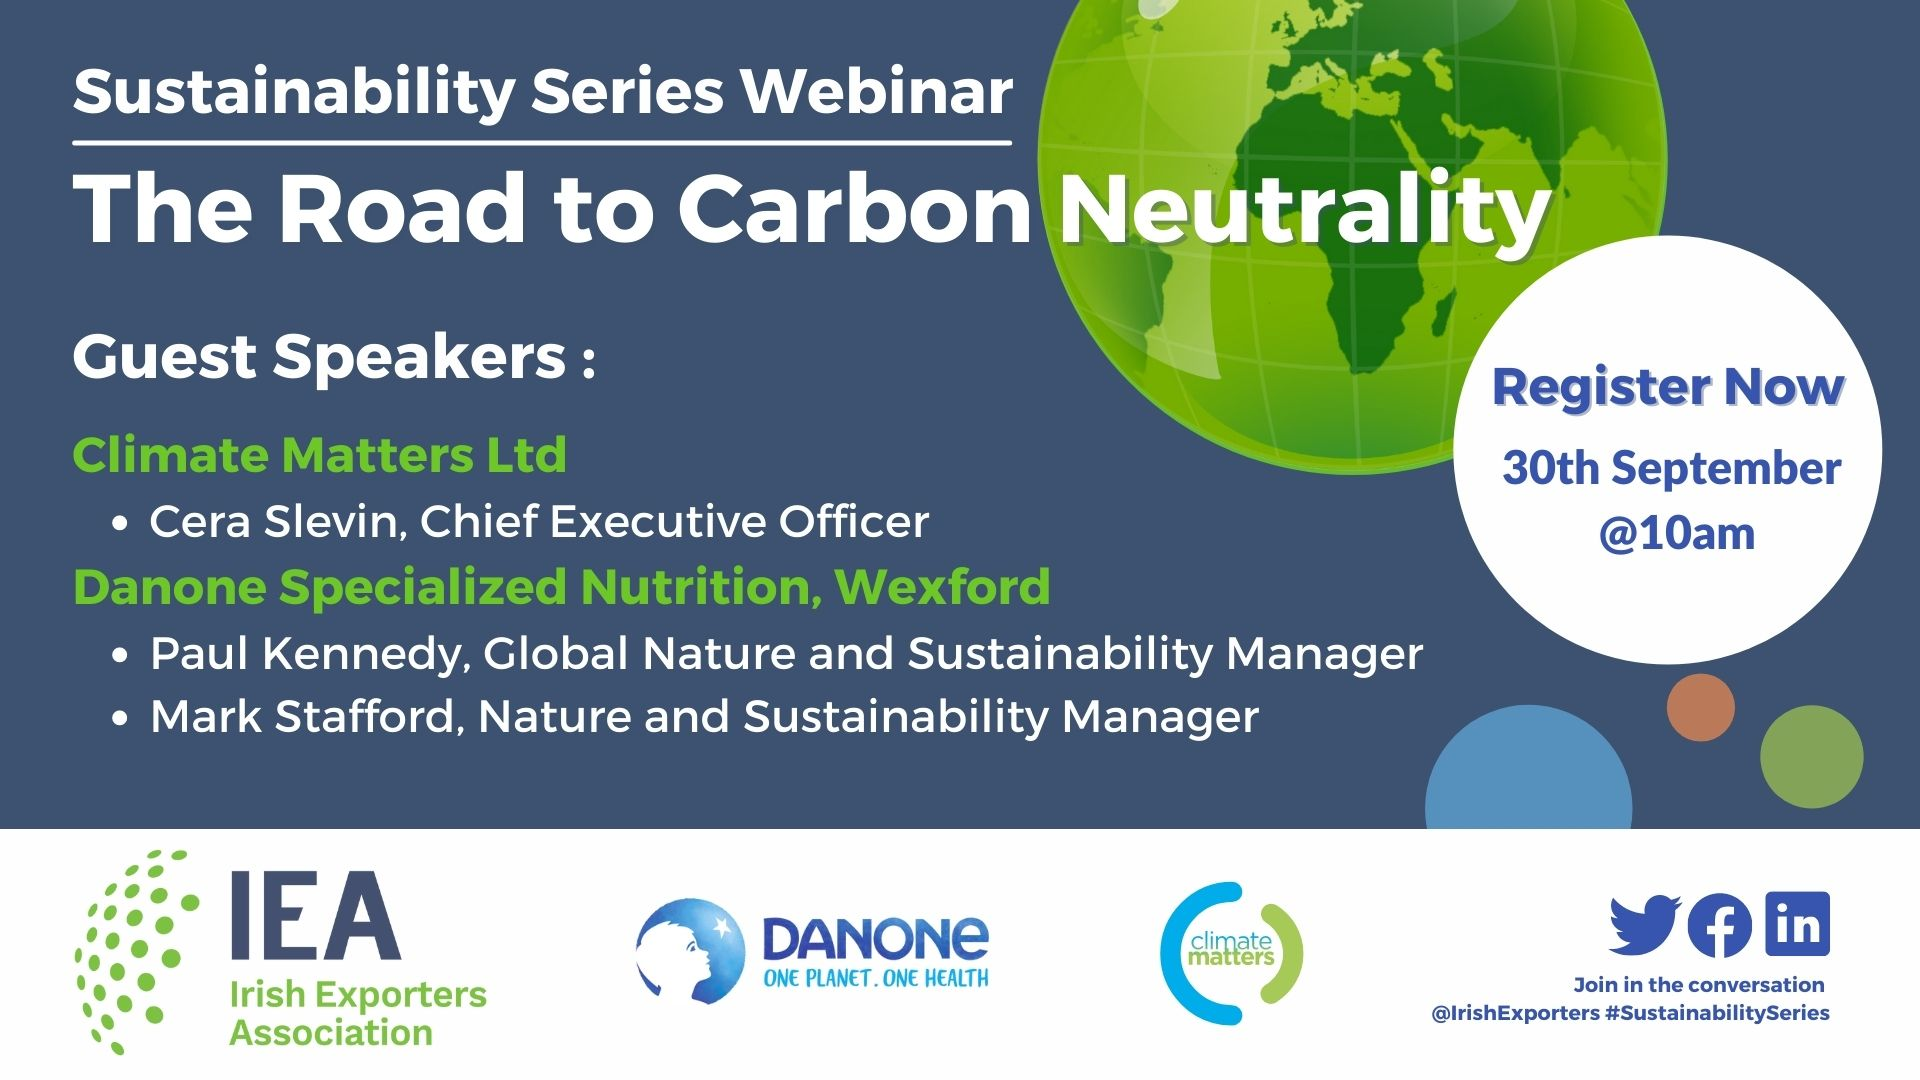 Sustainability Webinar: The Road to Carbon Neutrality